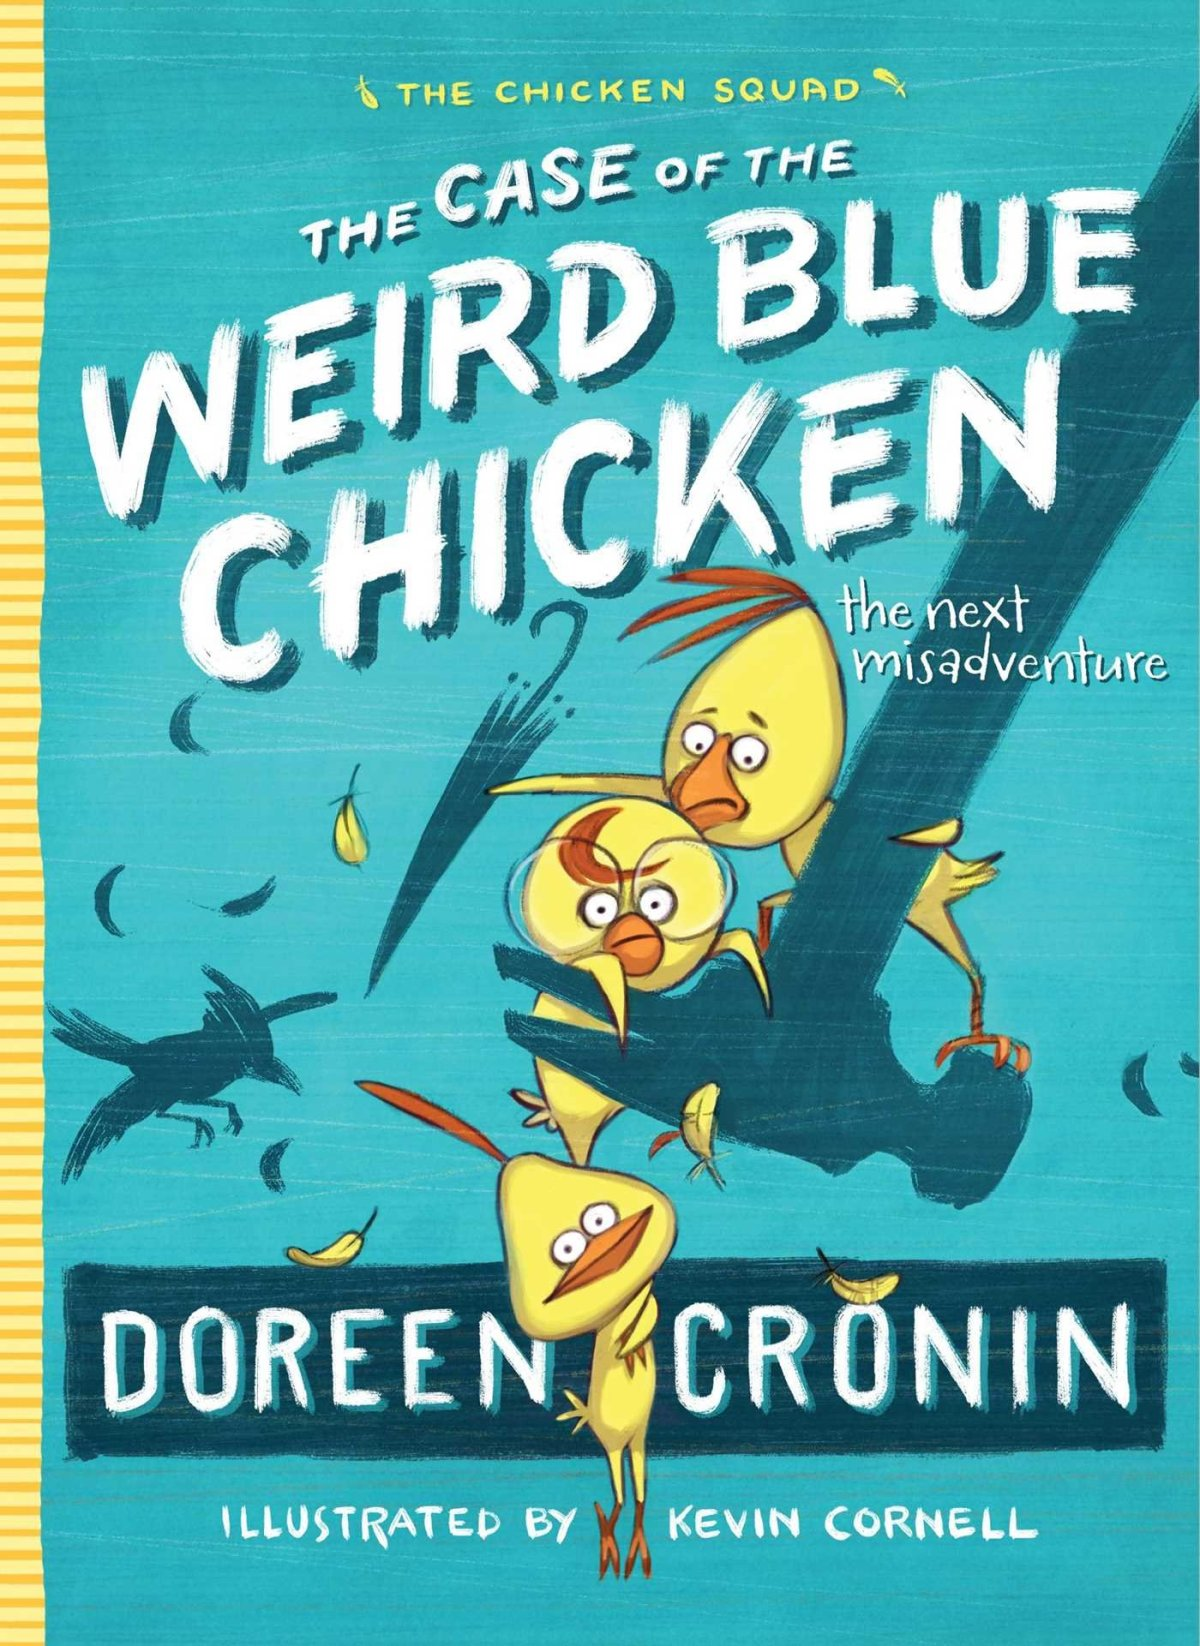 weird blue chicken cover image